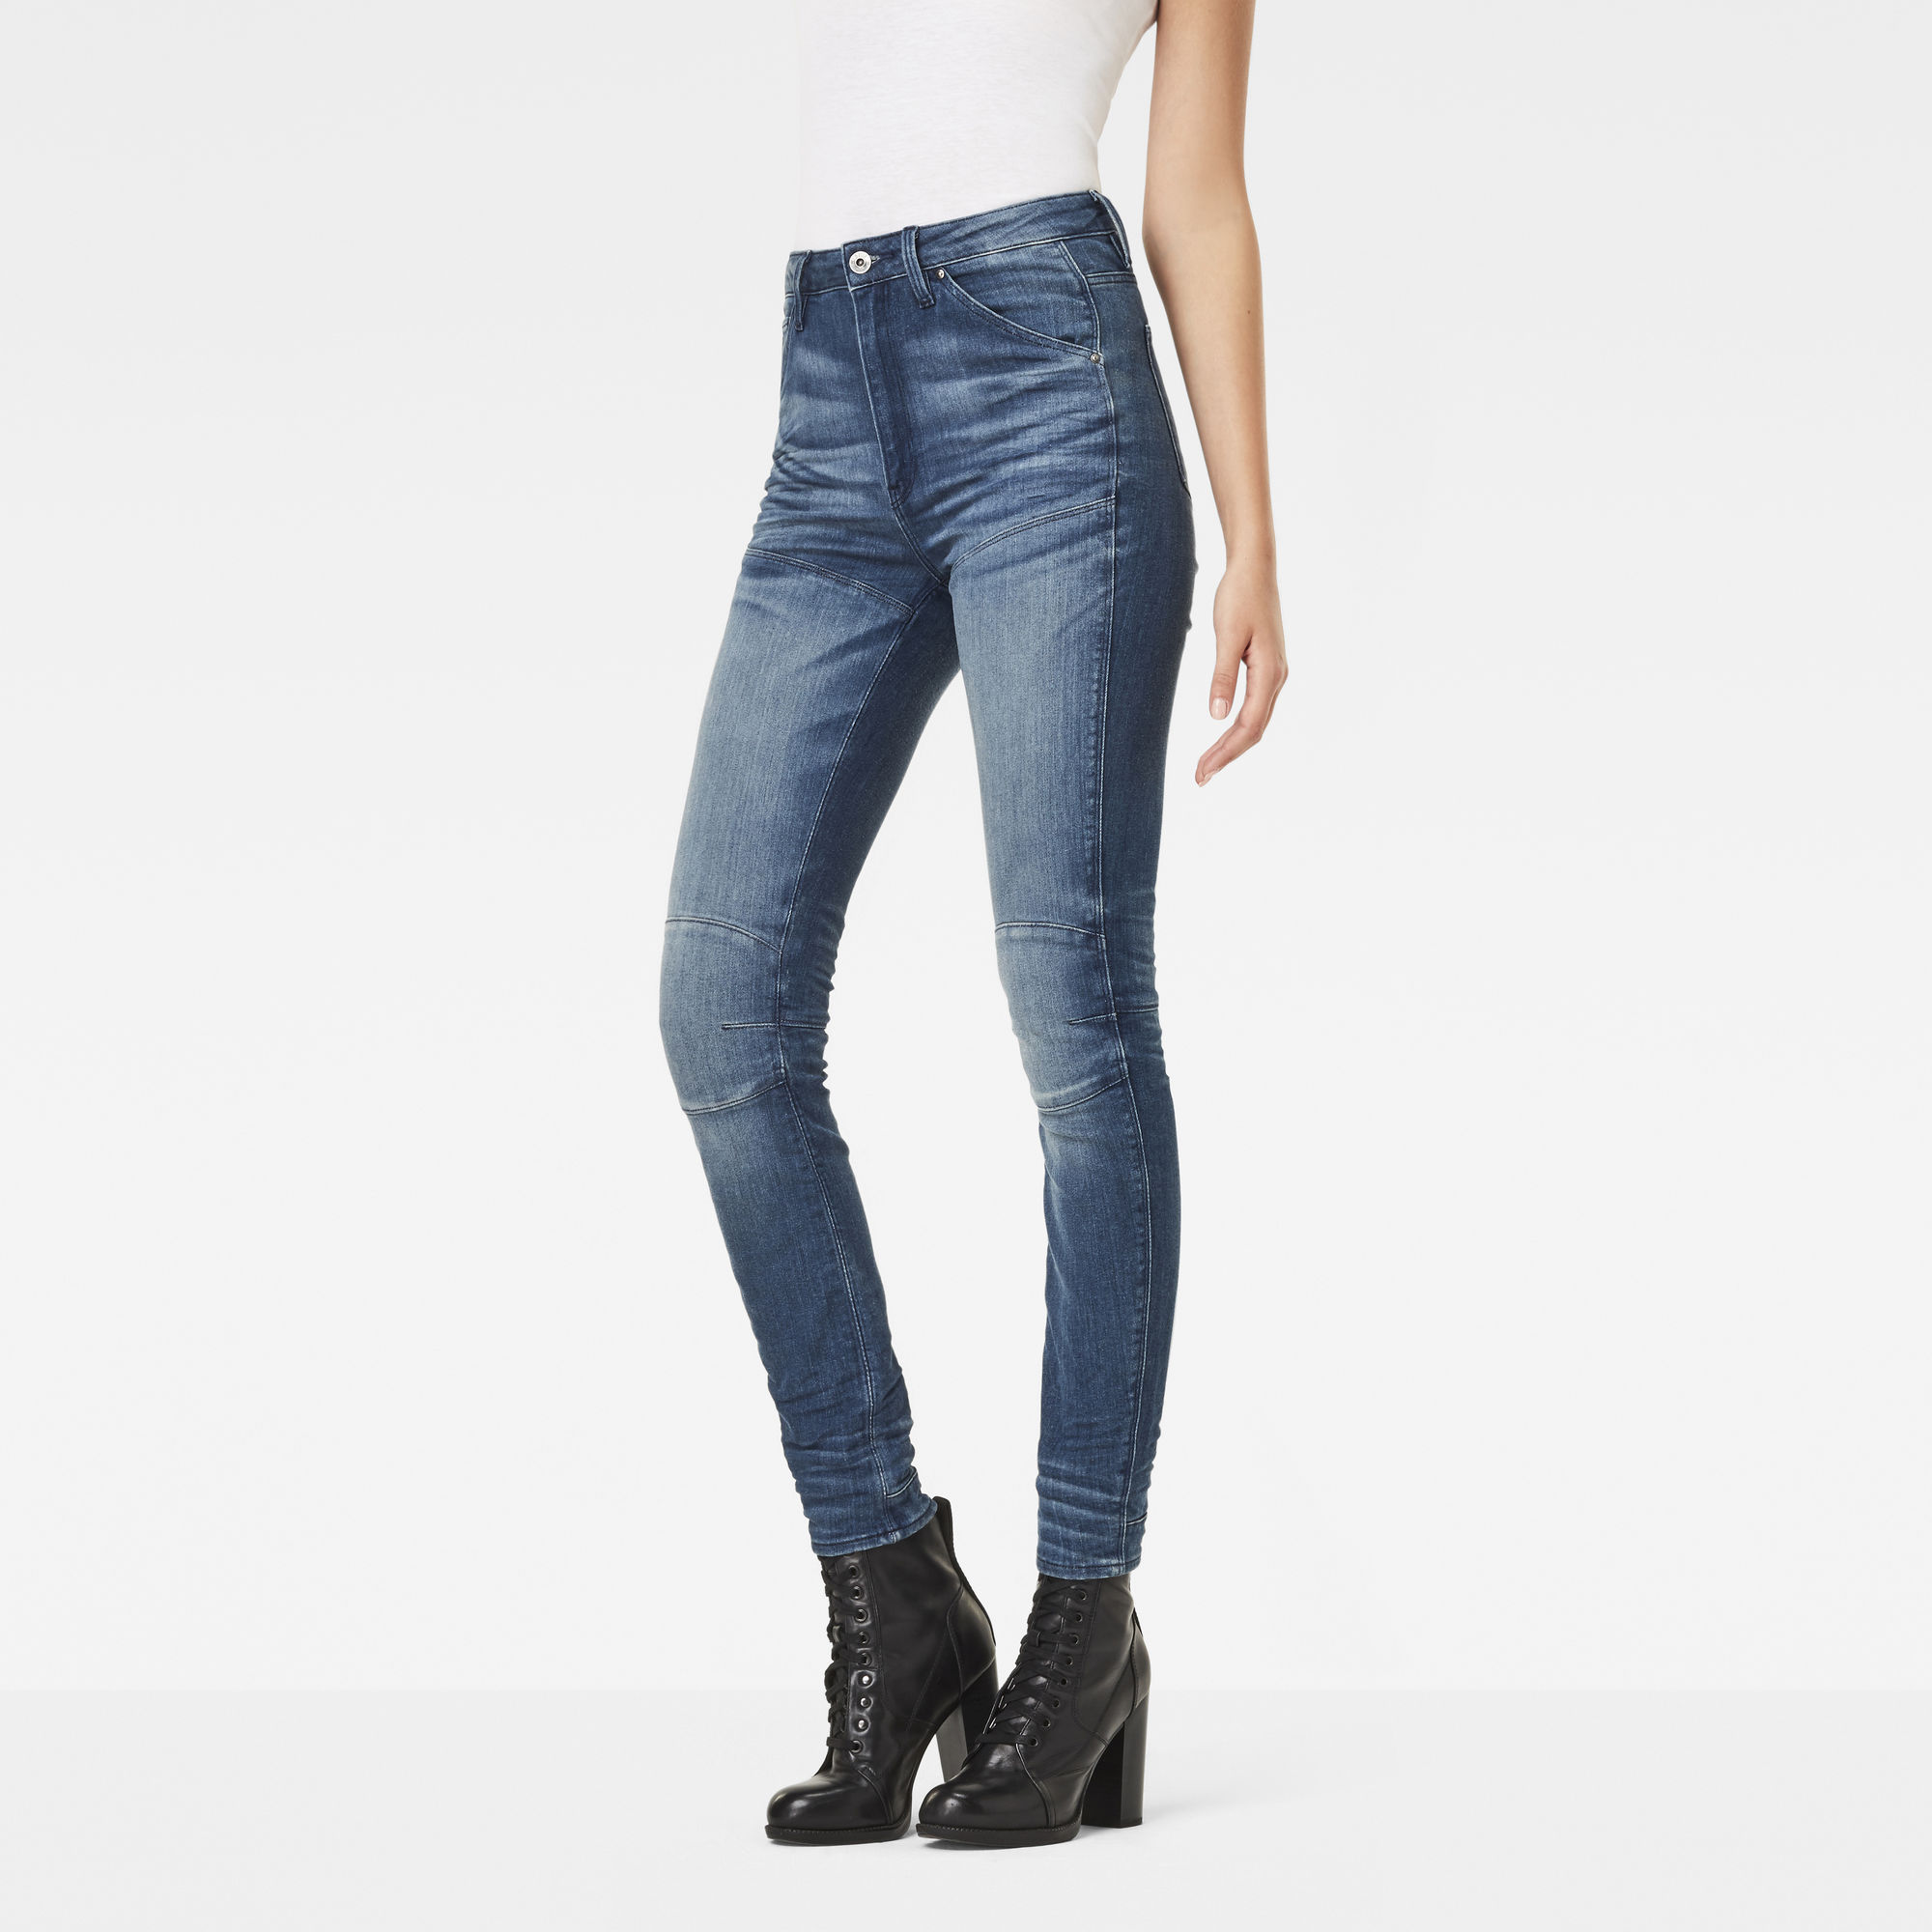 5620 G-Star Elwood Ultra High Waist Skinny Jeans